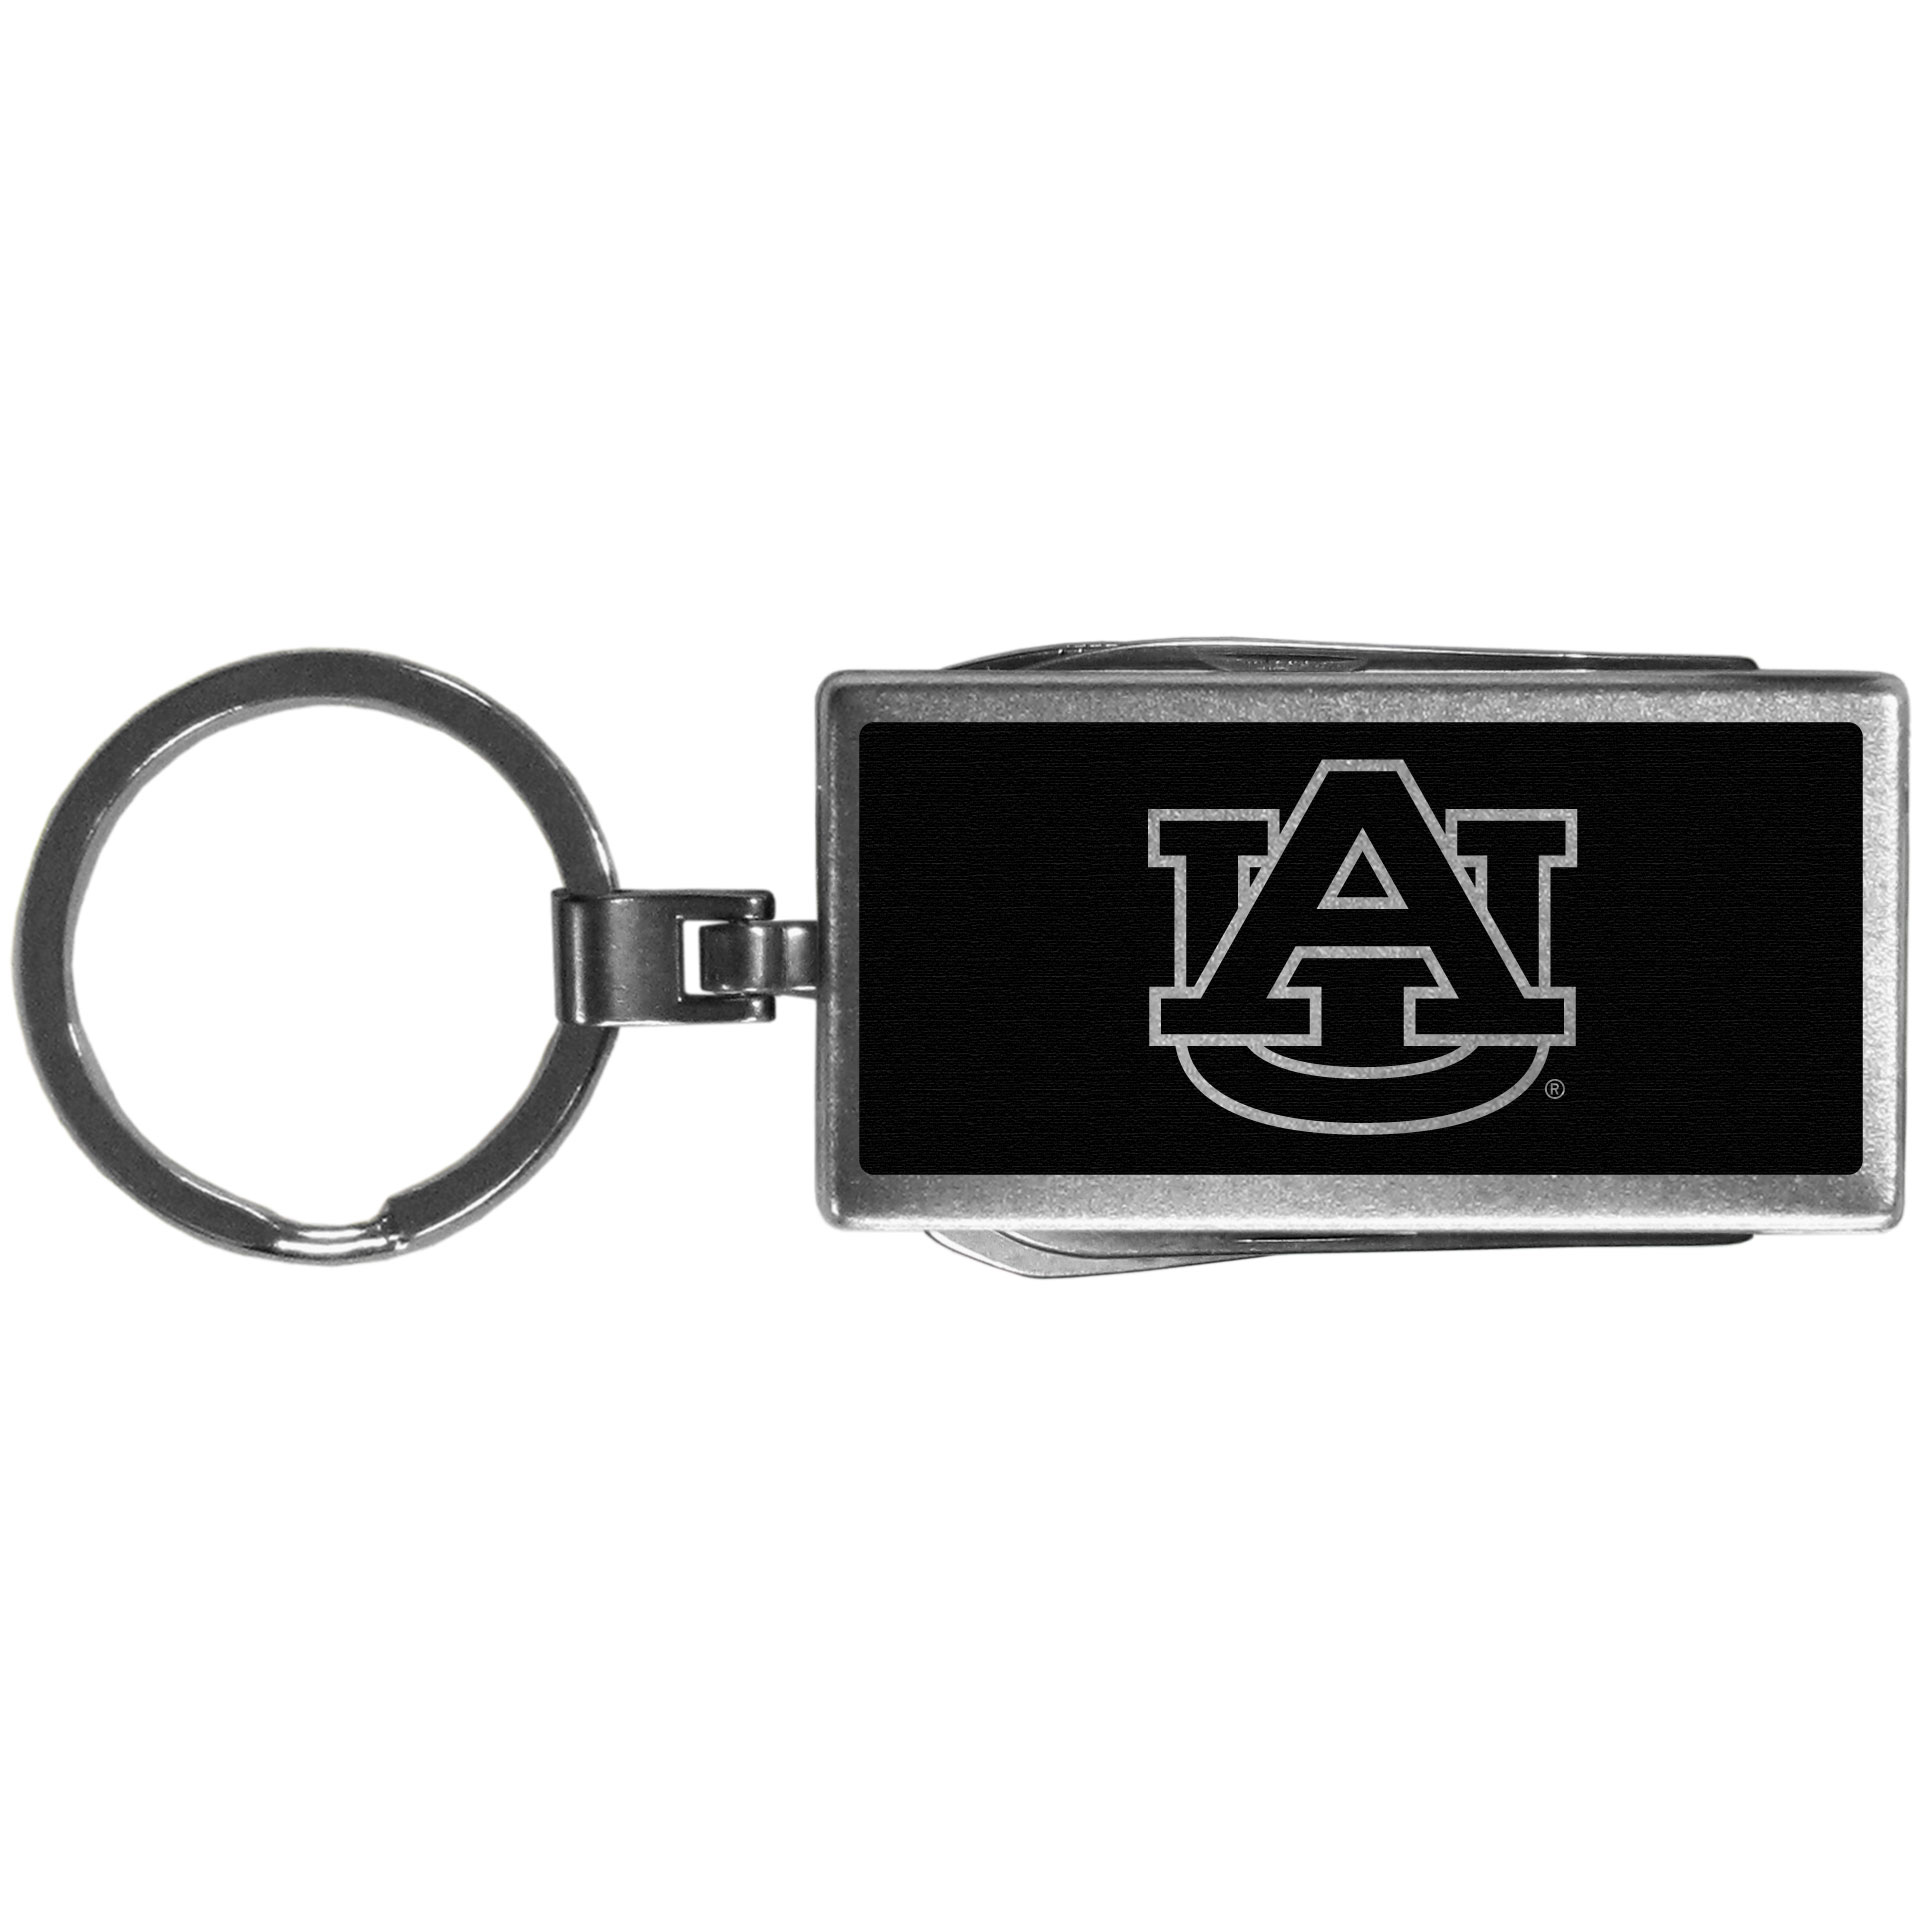 Auburn Tigers Multi-tool Key Chain, Black - Be the hero at the tailgate, camping, or on a Friday night with your Auburn Tigers Multi-Tool Keychain which comes complete with bottle opener, scissors, knife, nail file and screw driver. Be it opening a package or a beverage Siskiyou's Multi-Tool Keychain goes wherever your keys do. The keychain hangs at 4 inches long when closed.